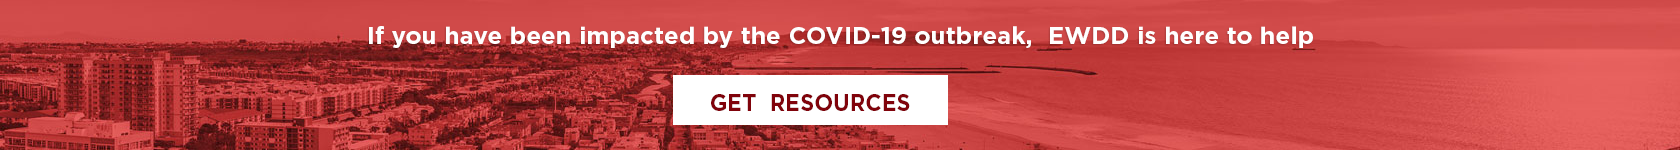 EWDD COVID-19 Pandemic resources